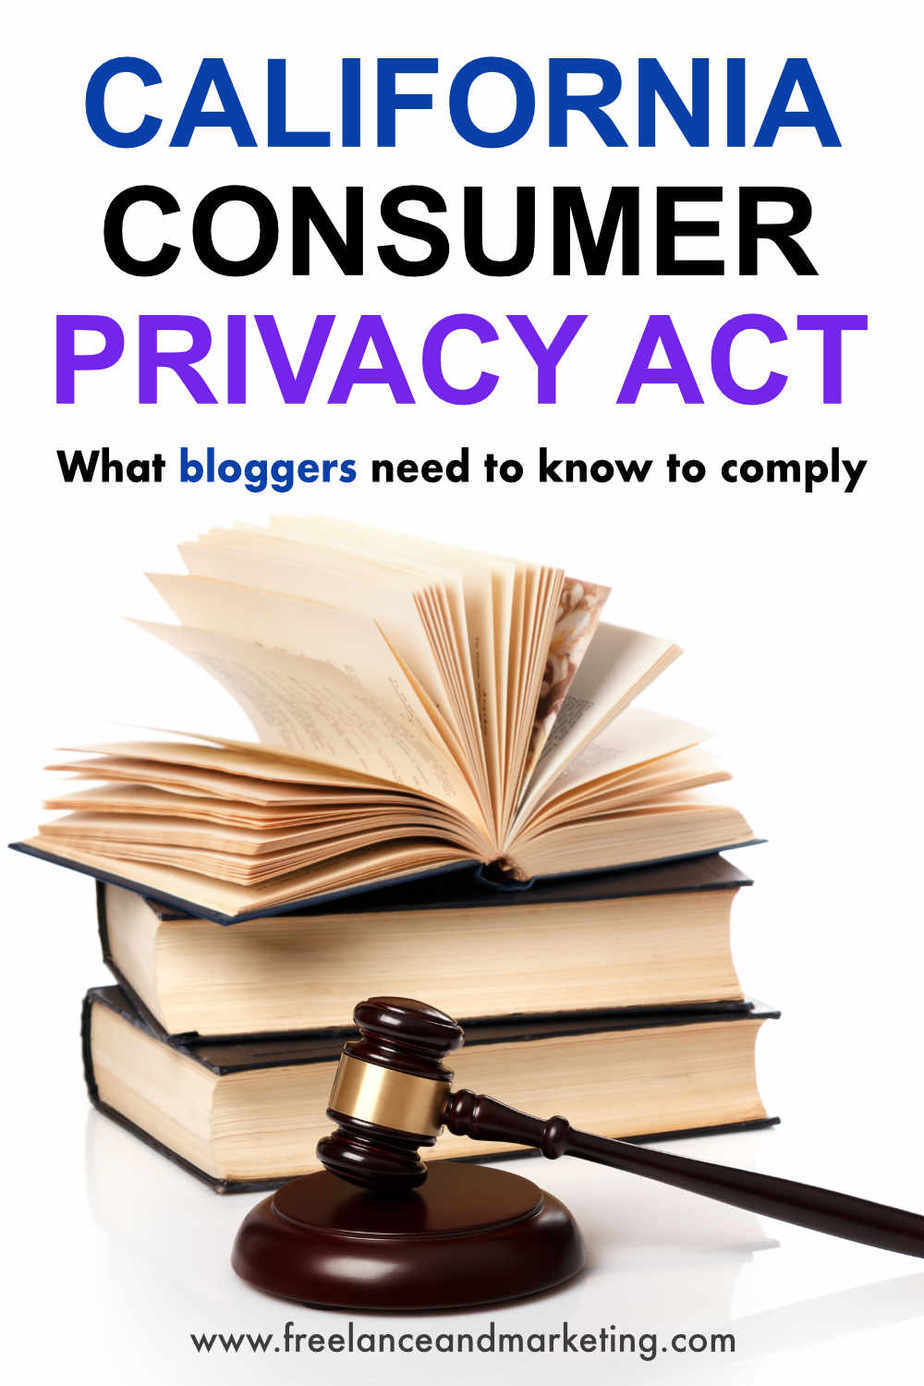 California Consumer Privacy Act is a new privacy law in California that concerns not just those who live and do business in California, but many others. This is a similar measure to GDPR that California adopted. Learn how you as a blogger and entrepreneur must comply, what you need to do to make sure you are CCPA compliant. #privacylaws #CCPA #Californiaprivacylaw #blogginglegally #bloggercompliance